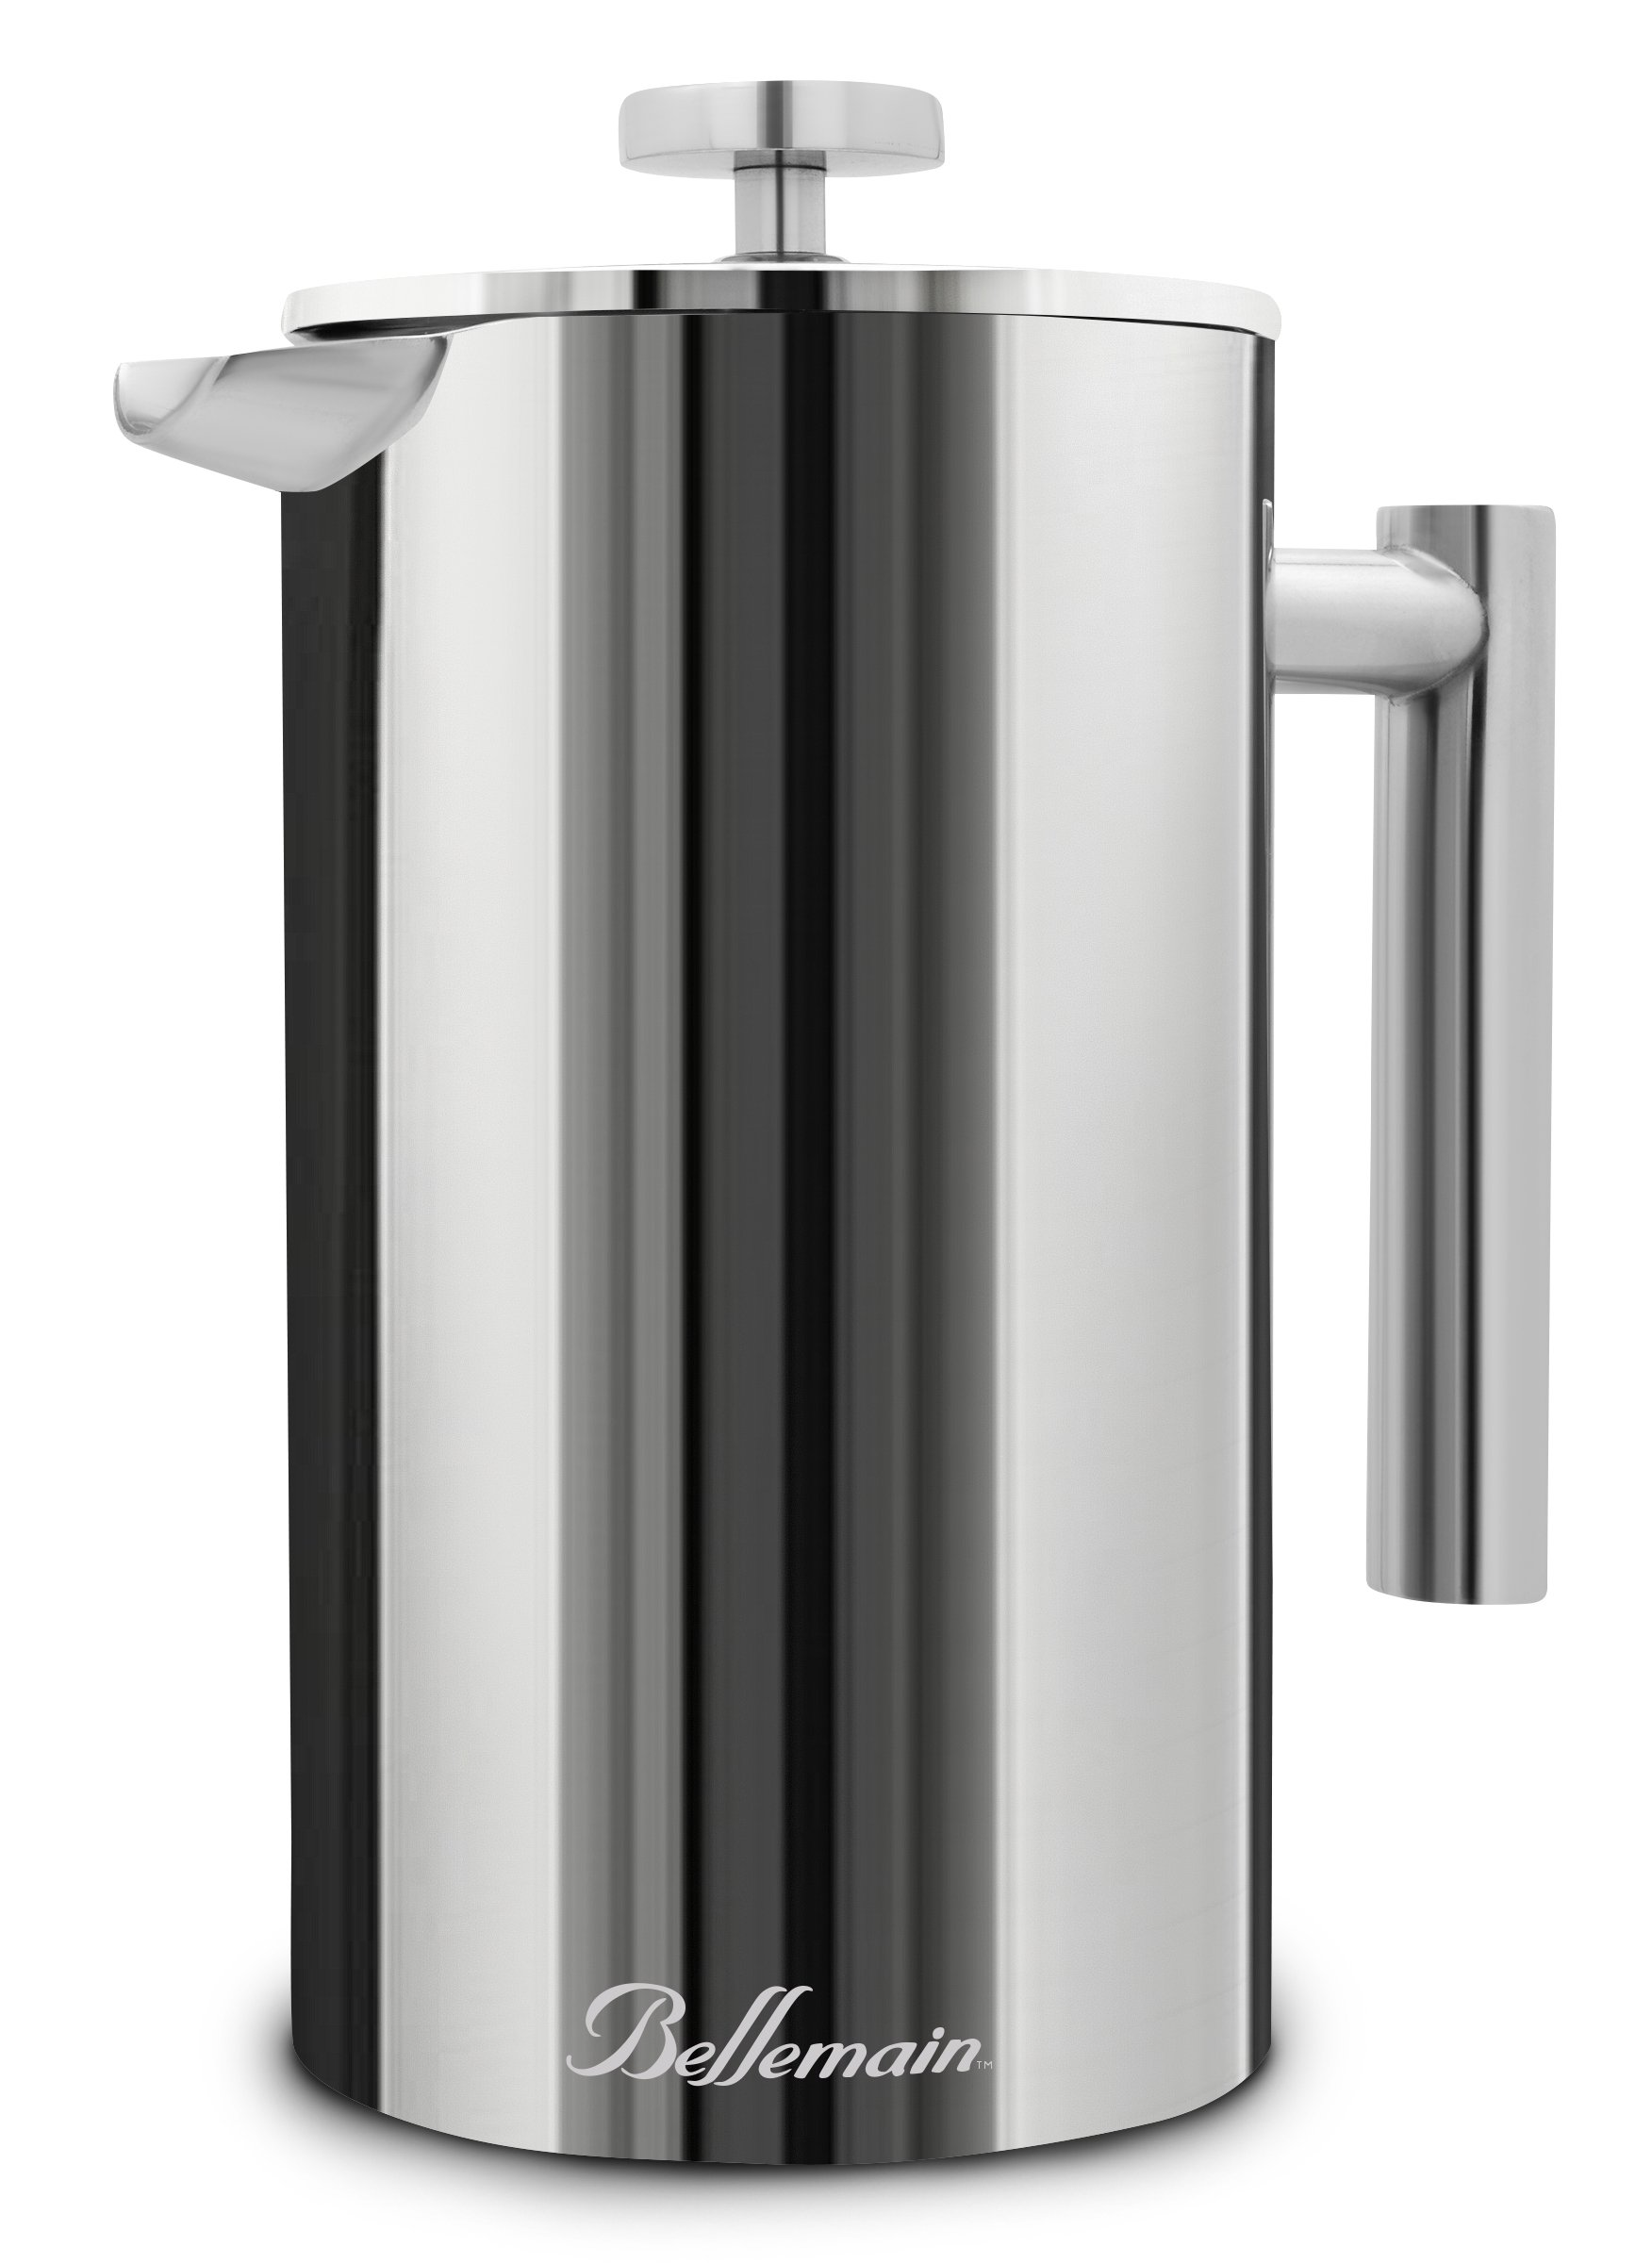 Bellemain French Press - Extra Filters Included - Coffee and Tea Maker - Stainless Steel - 34 fl. oz (1 Liter). - 2-Year Warranty